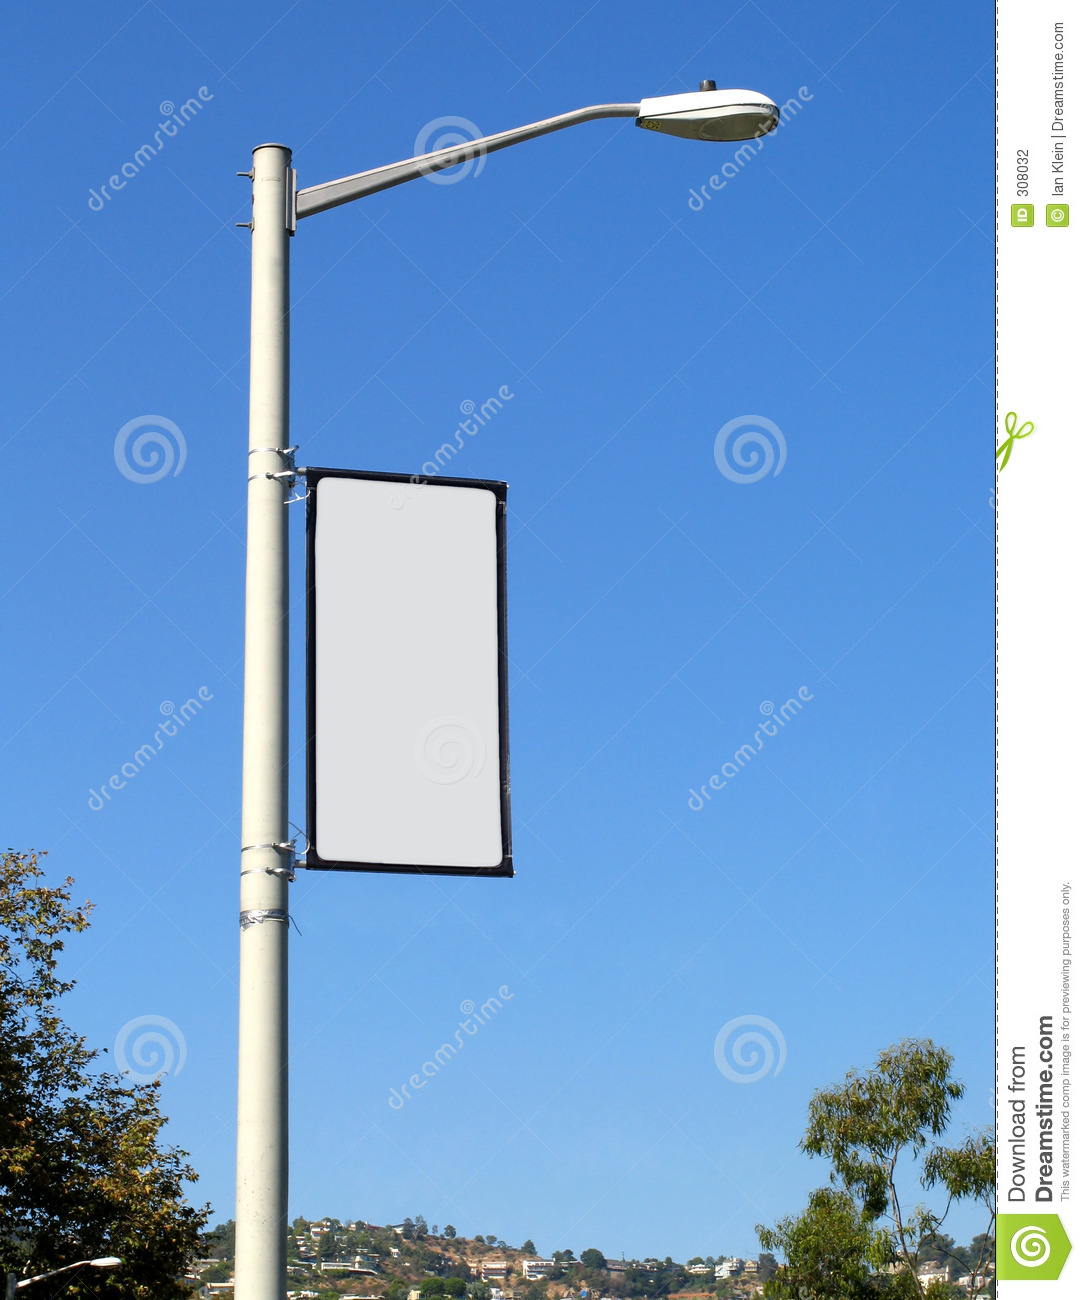 Post: Blank Banner On Light Post Stock Photo. Image Of Lamp